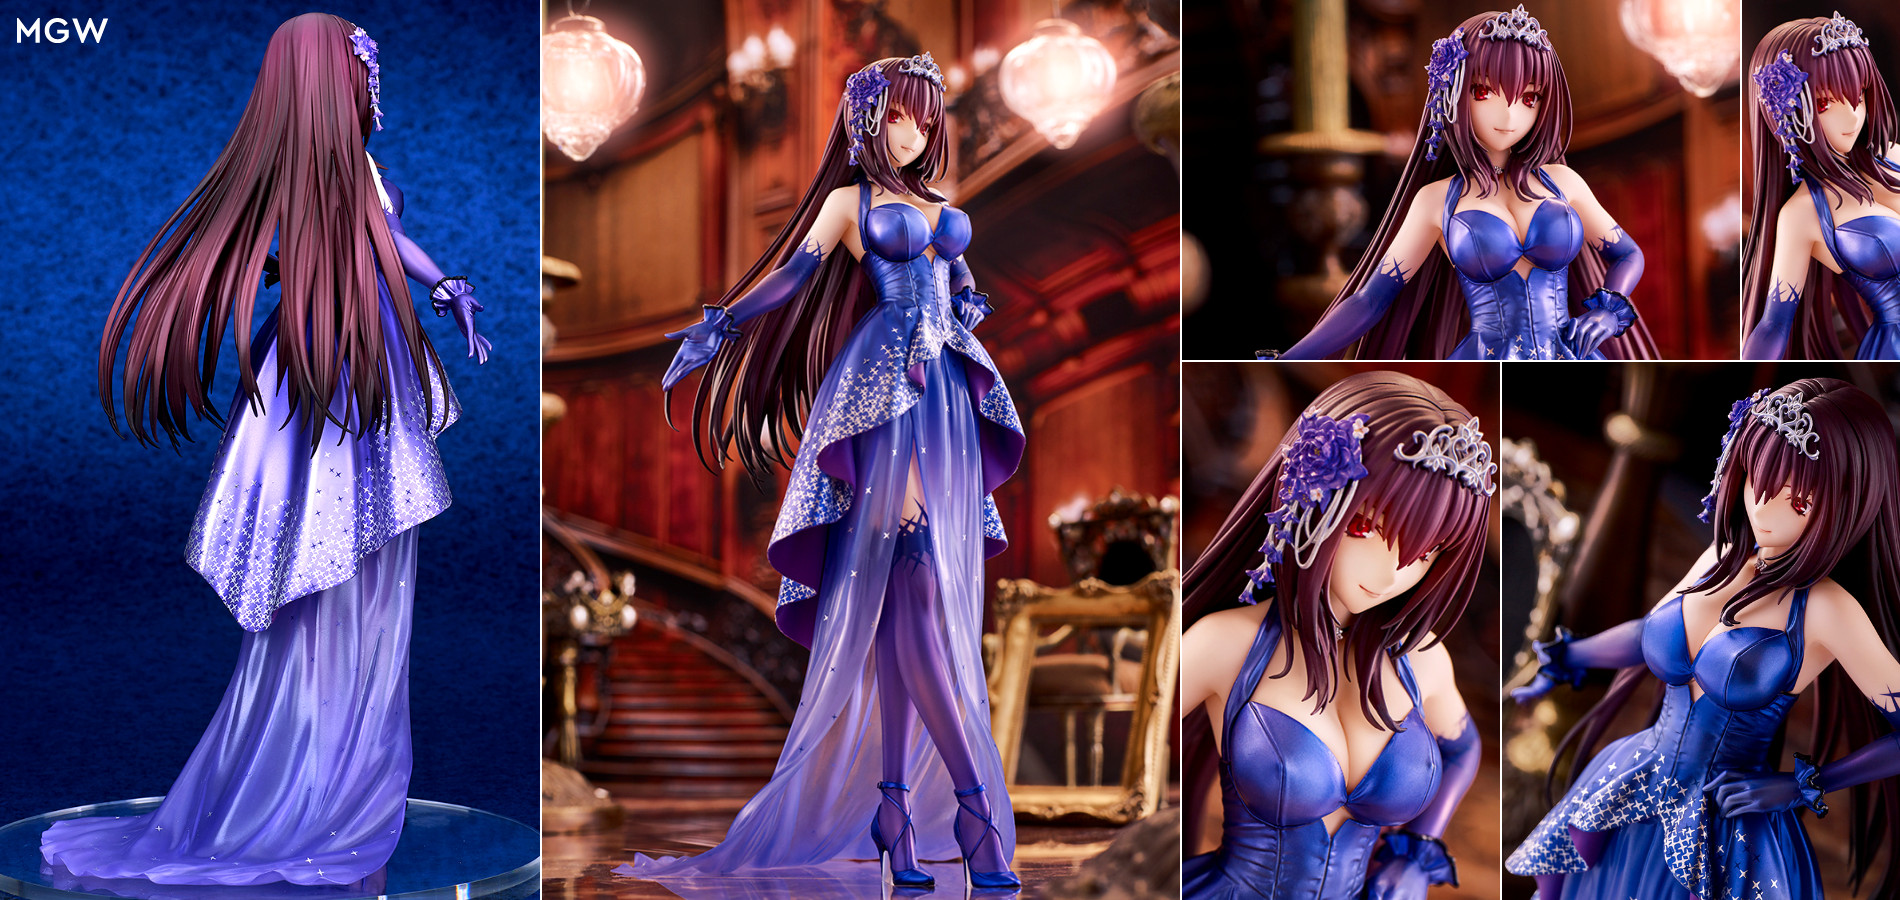 Lancer/Scáthach Heroic Spirit Formal Dress by quesQ from Fate/Grand Order Anime Figure Header